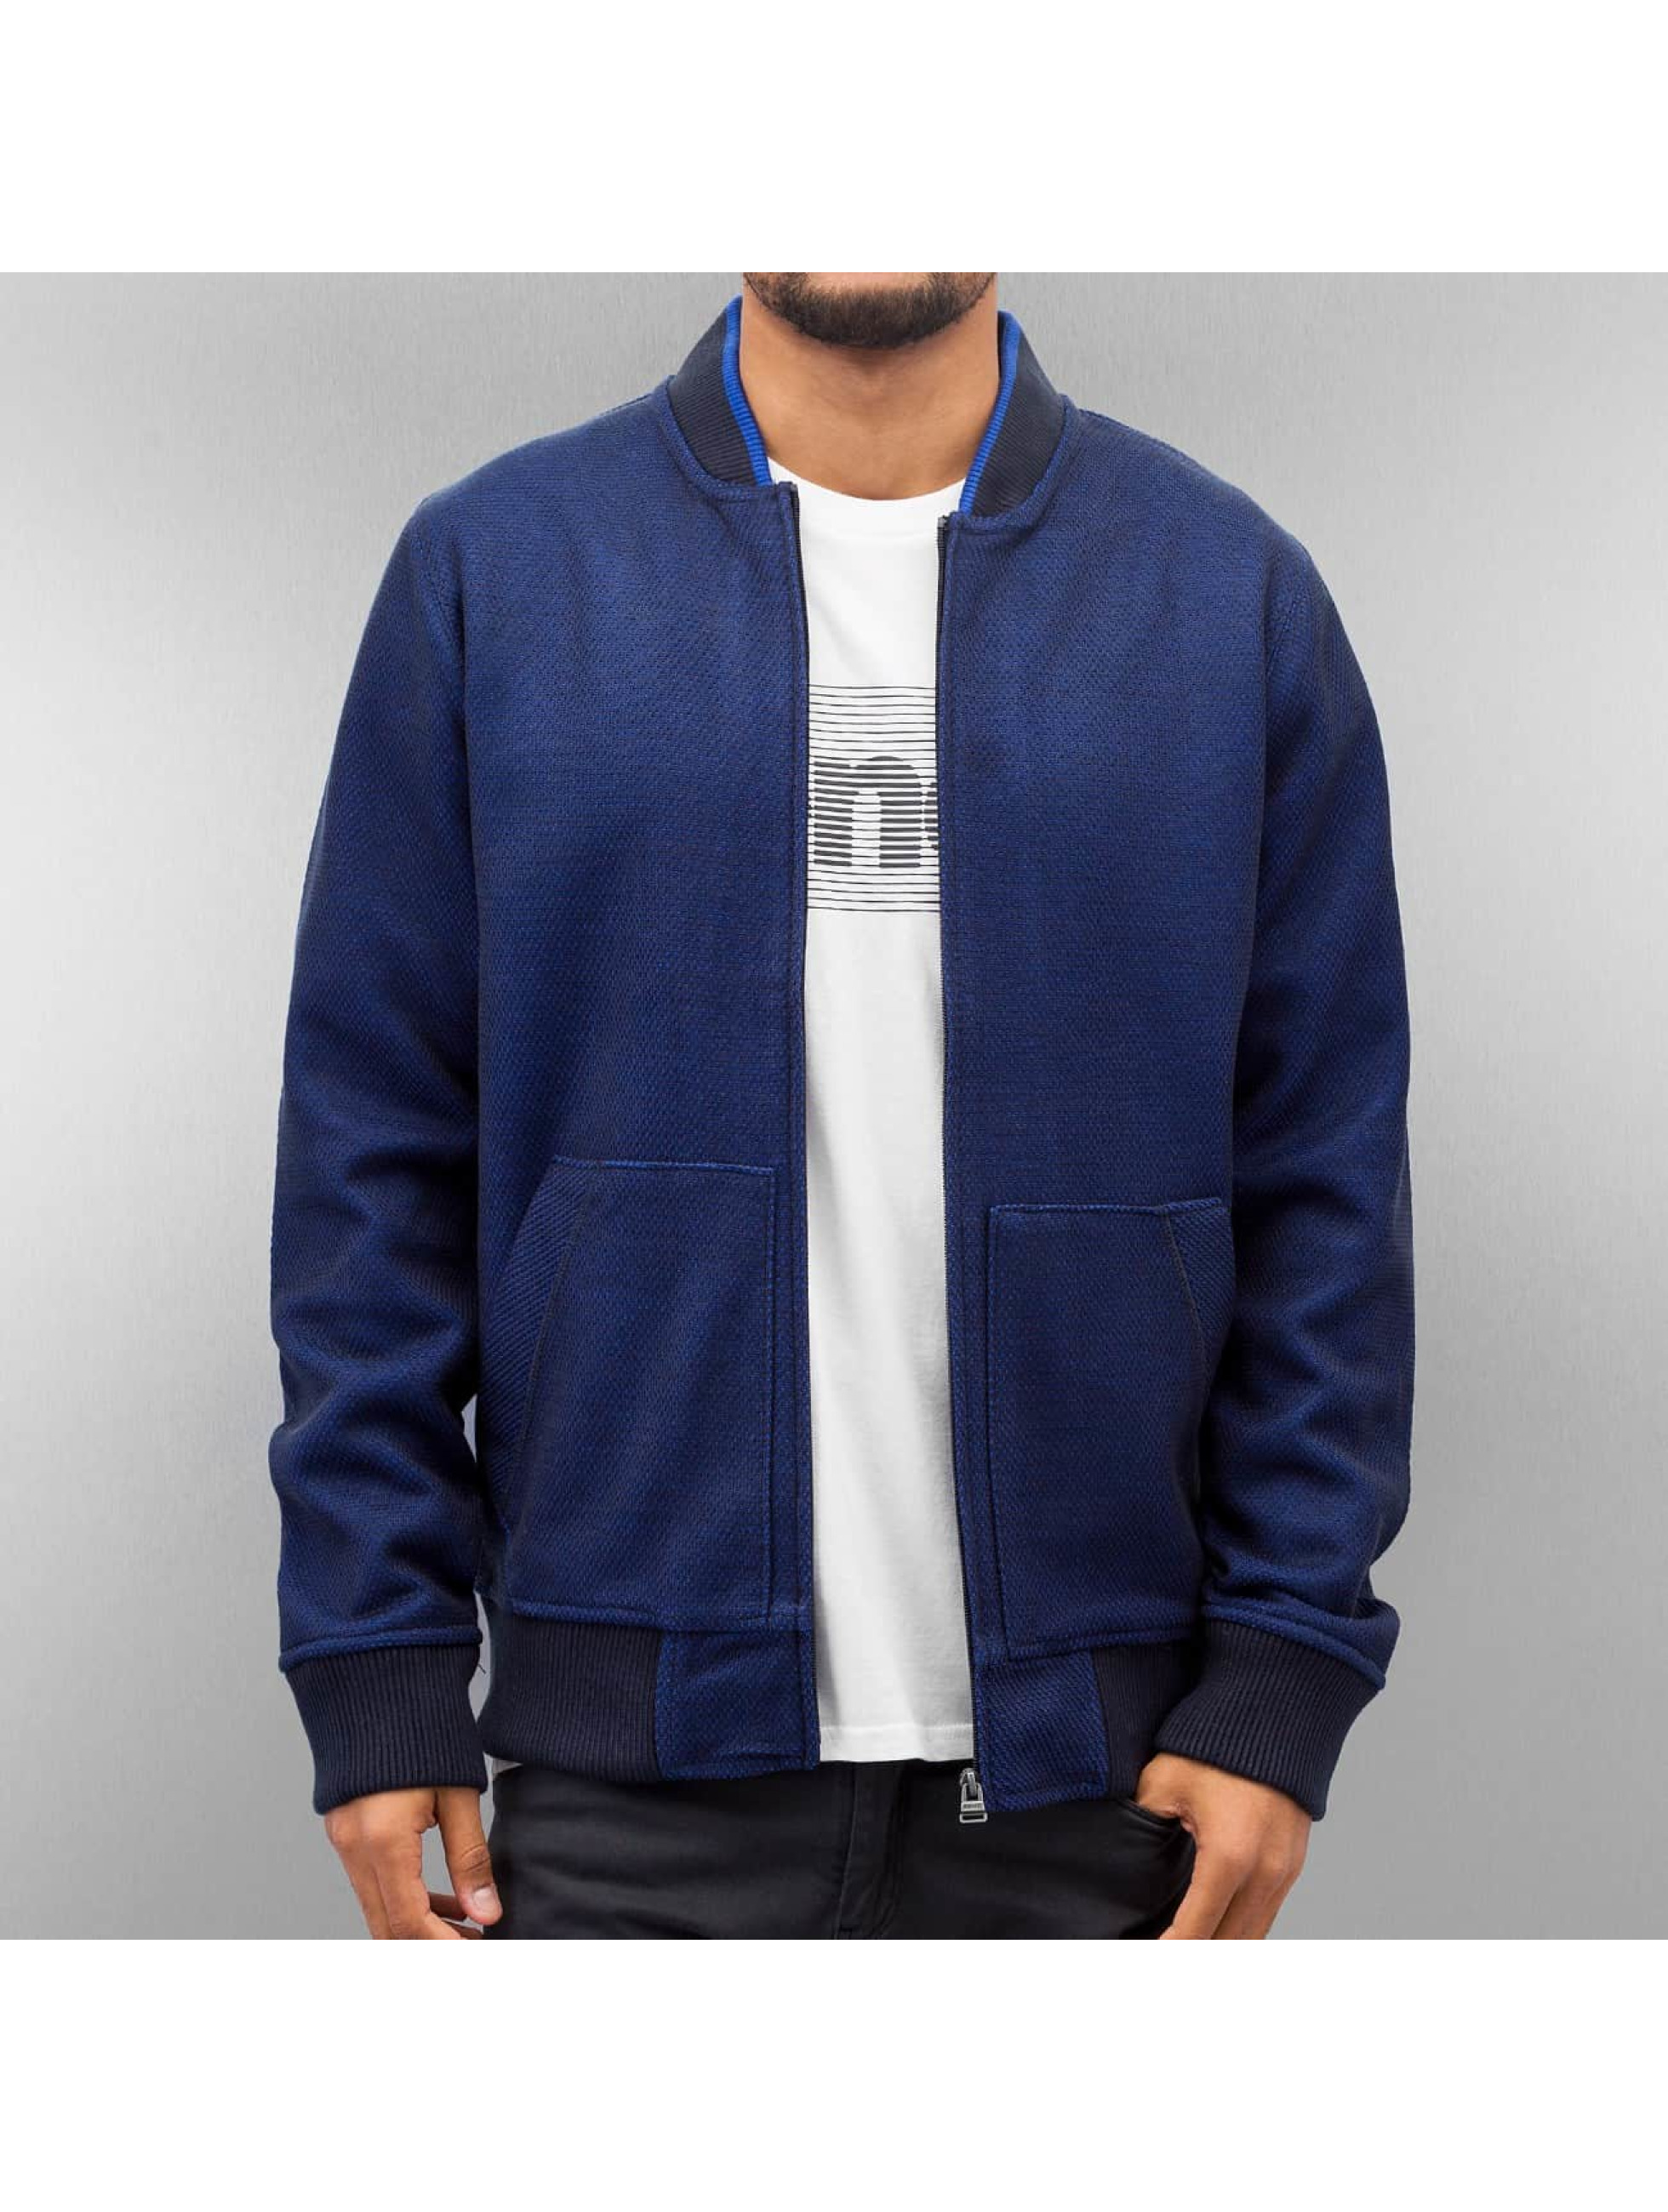 Bench Knack Sweater Total Eclipse